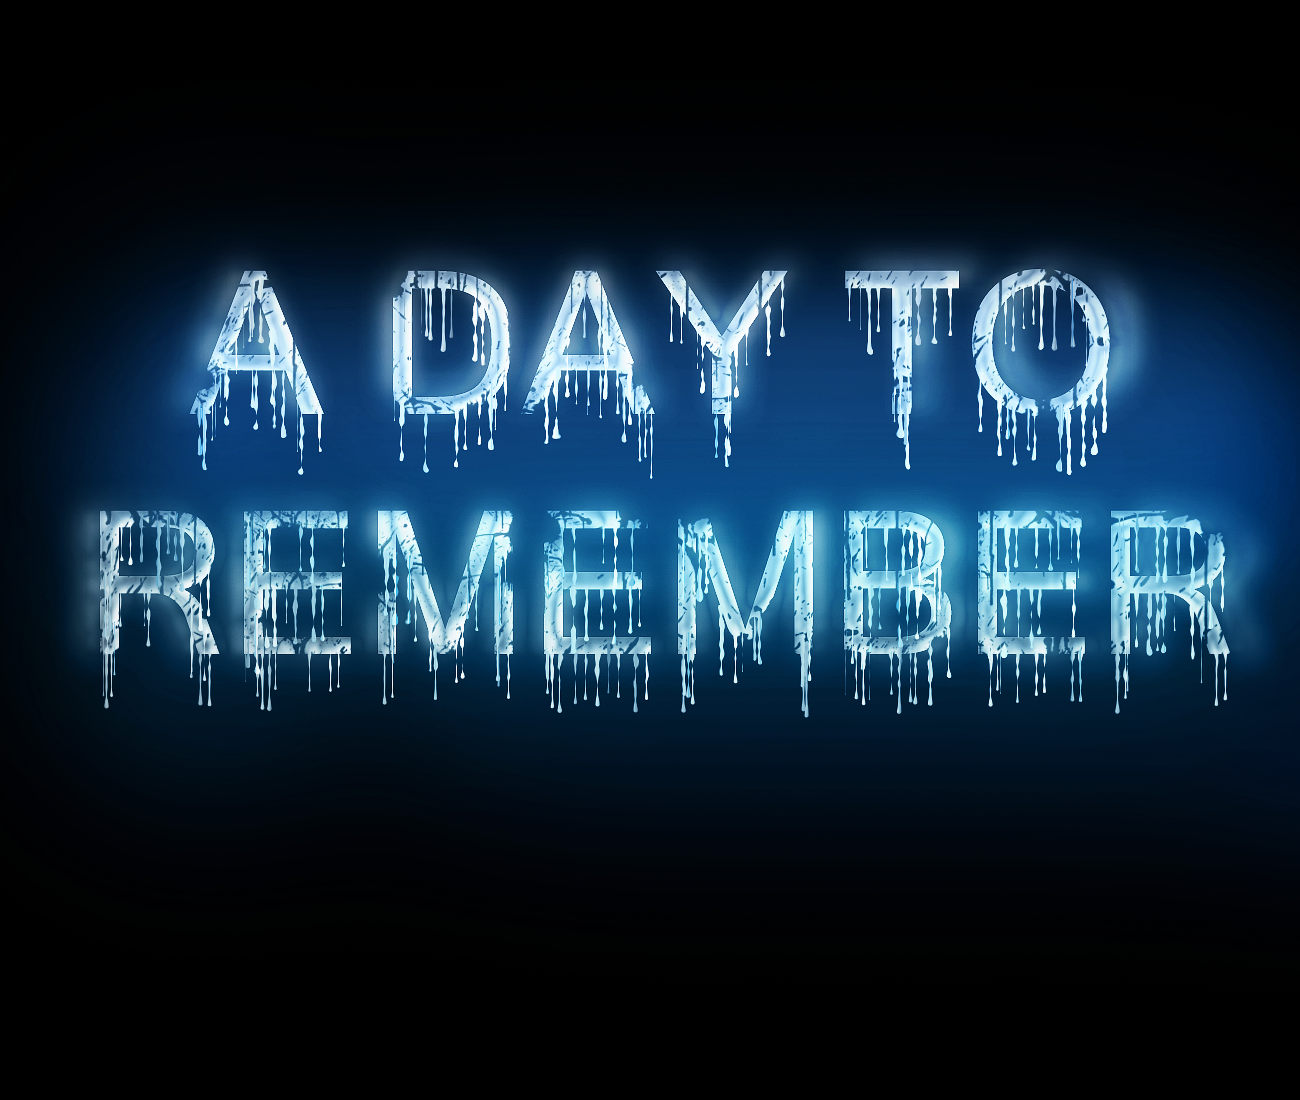 A Day To Remember Wallpaper 2 by pato92 1300x1100